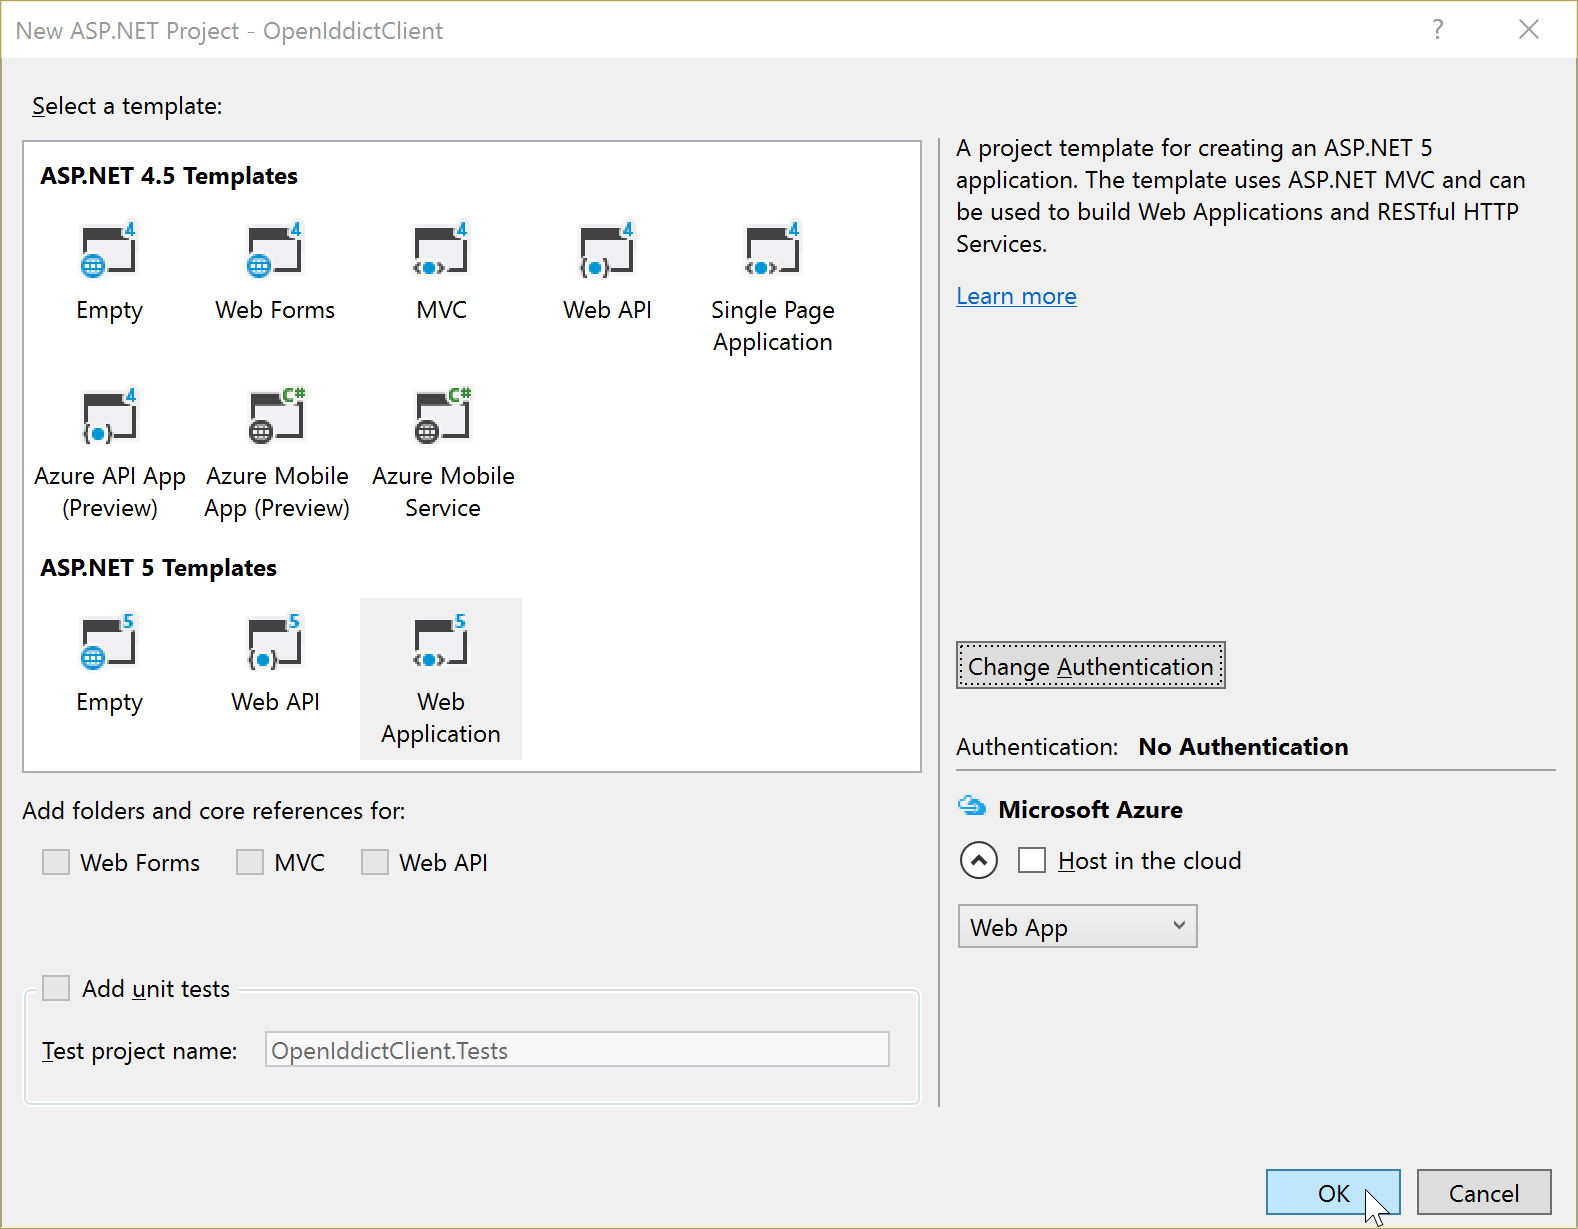 2015-12-20 13_41_32-New ASP.NET Project - OpenIddictClient.png